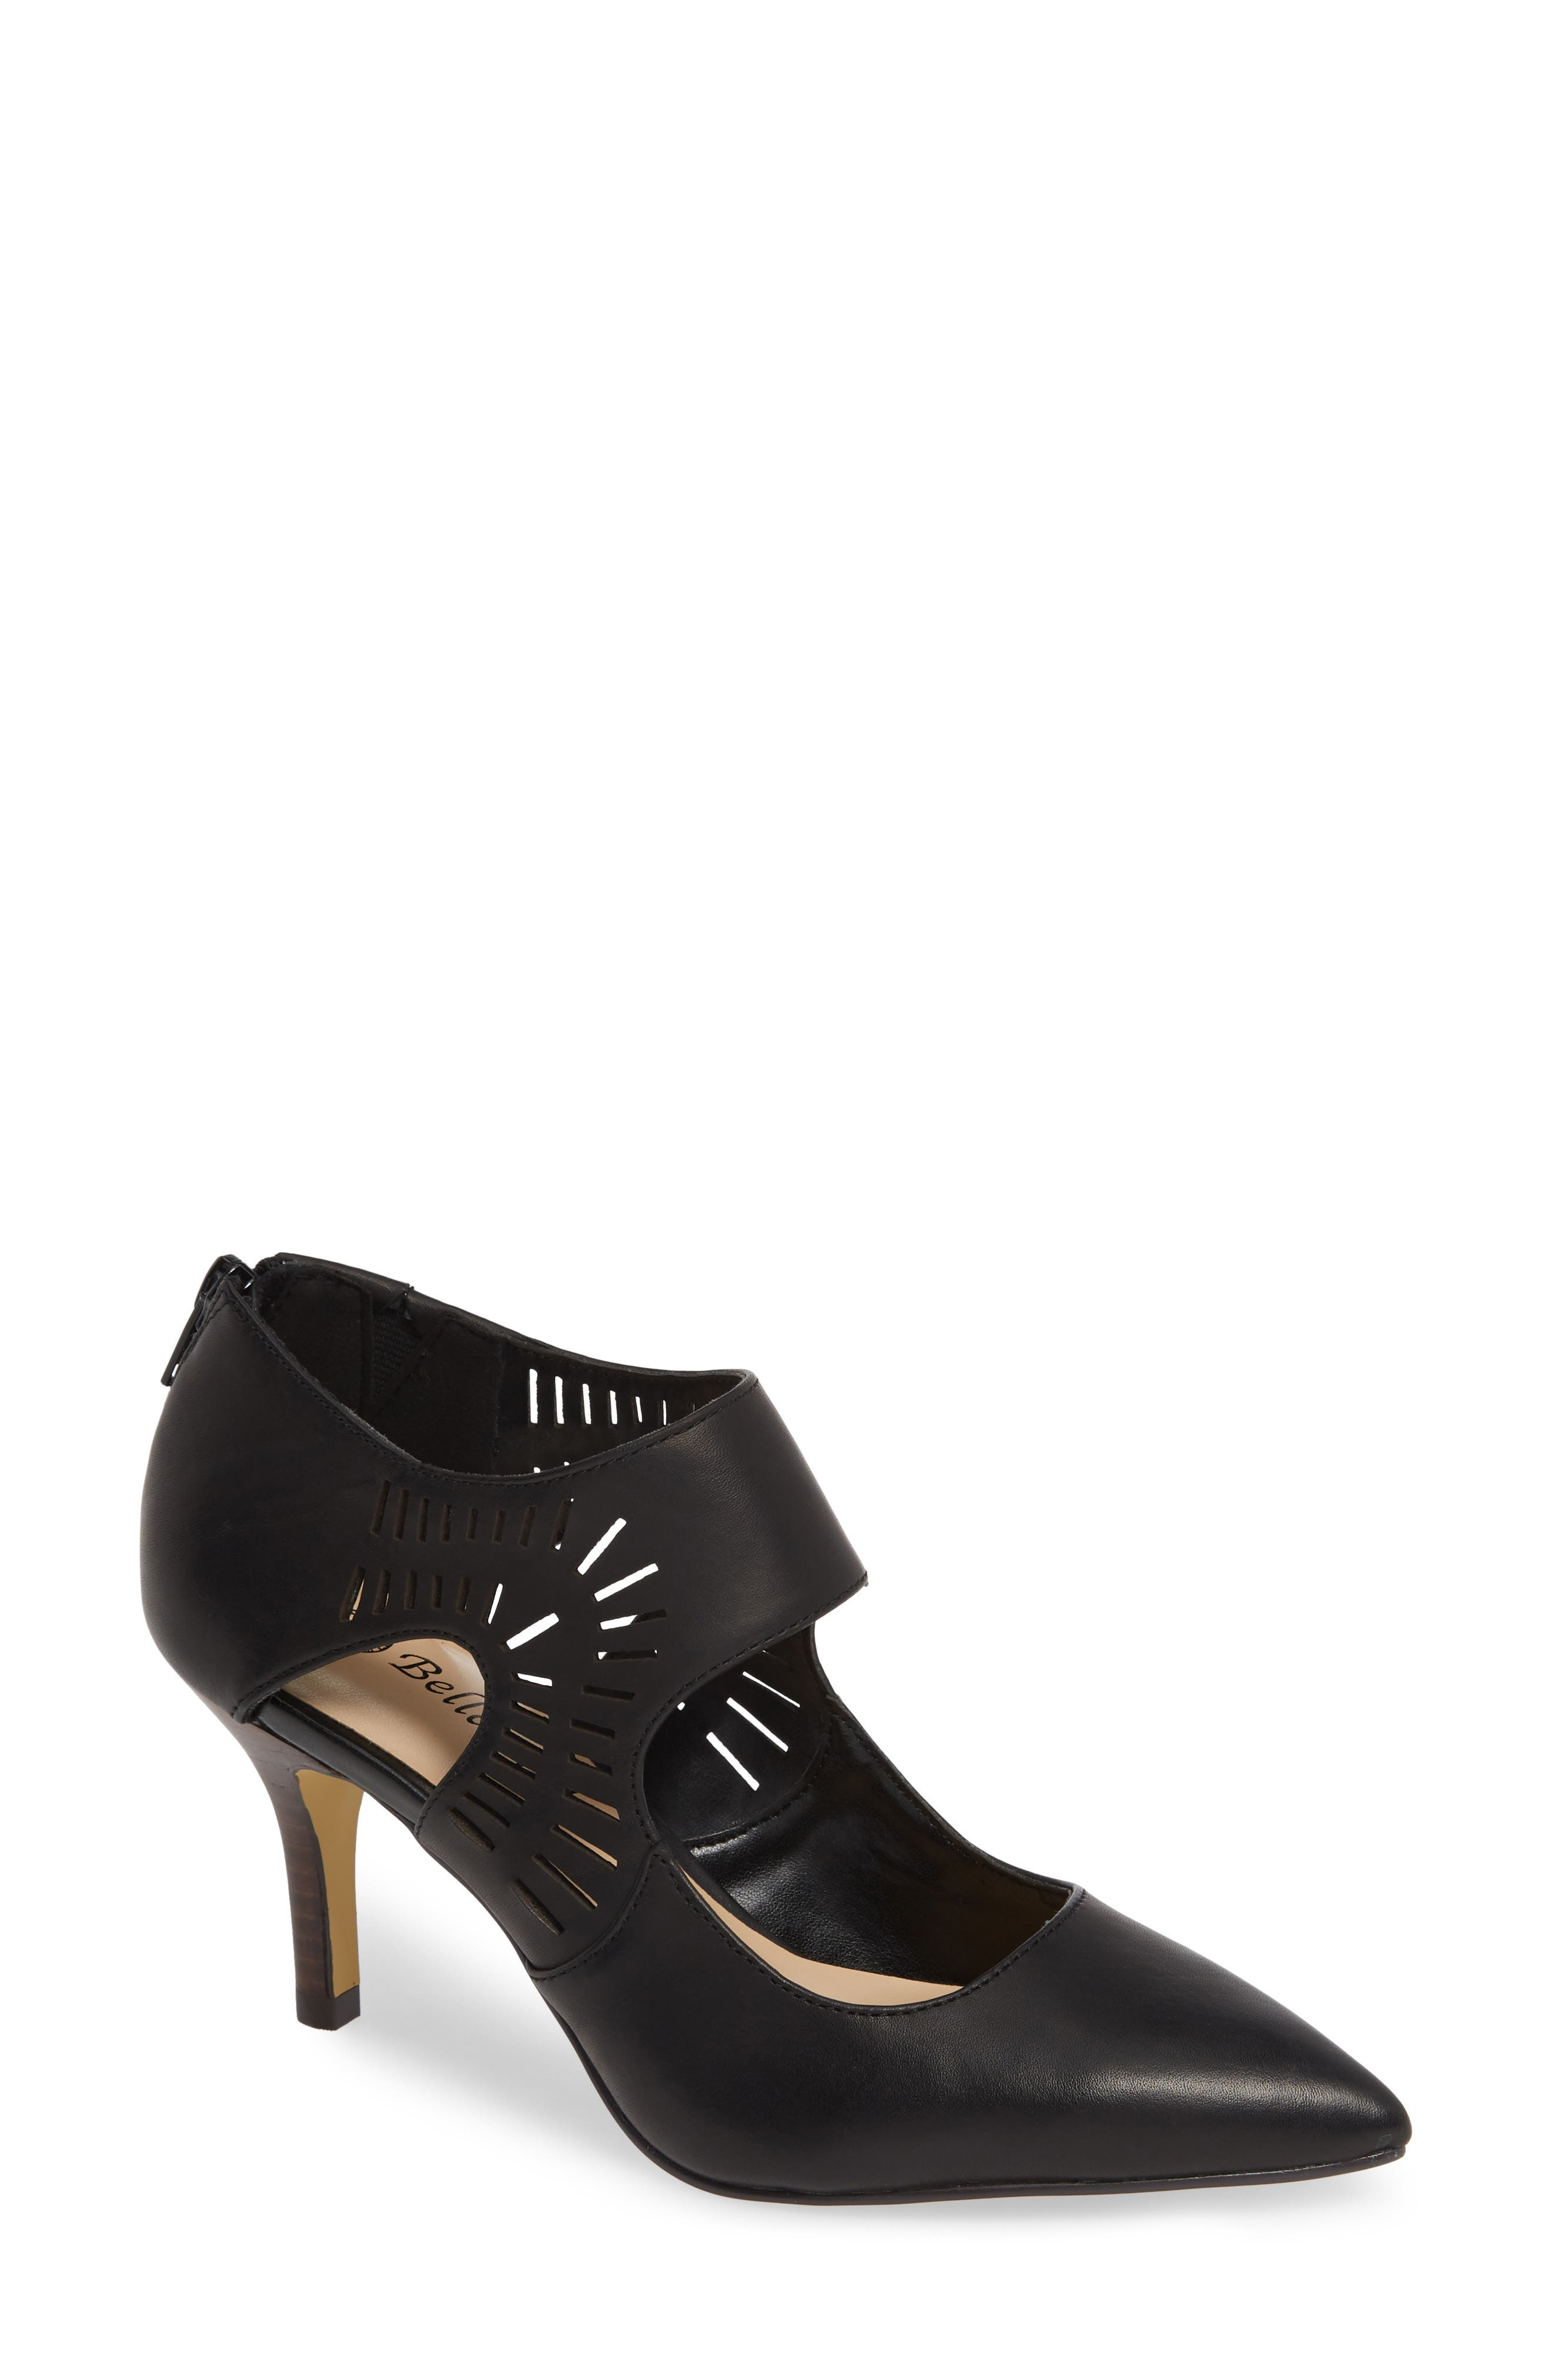 BELLA VITA, Dani Perforated Pump, Main thumbnail 1, color, BLACK LEATHER